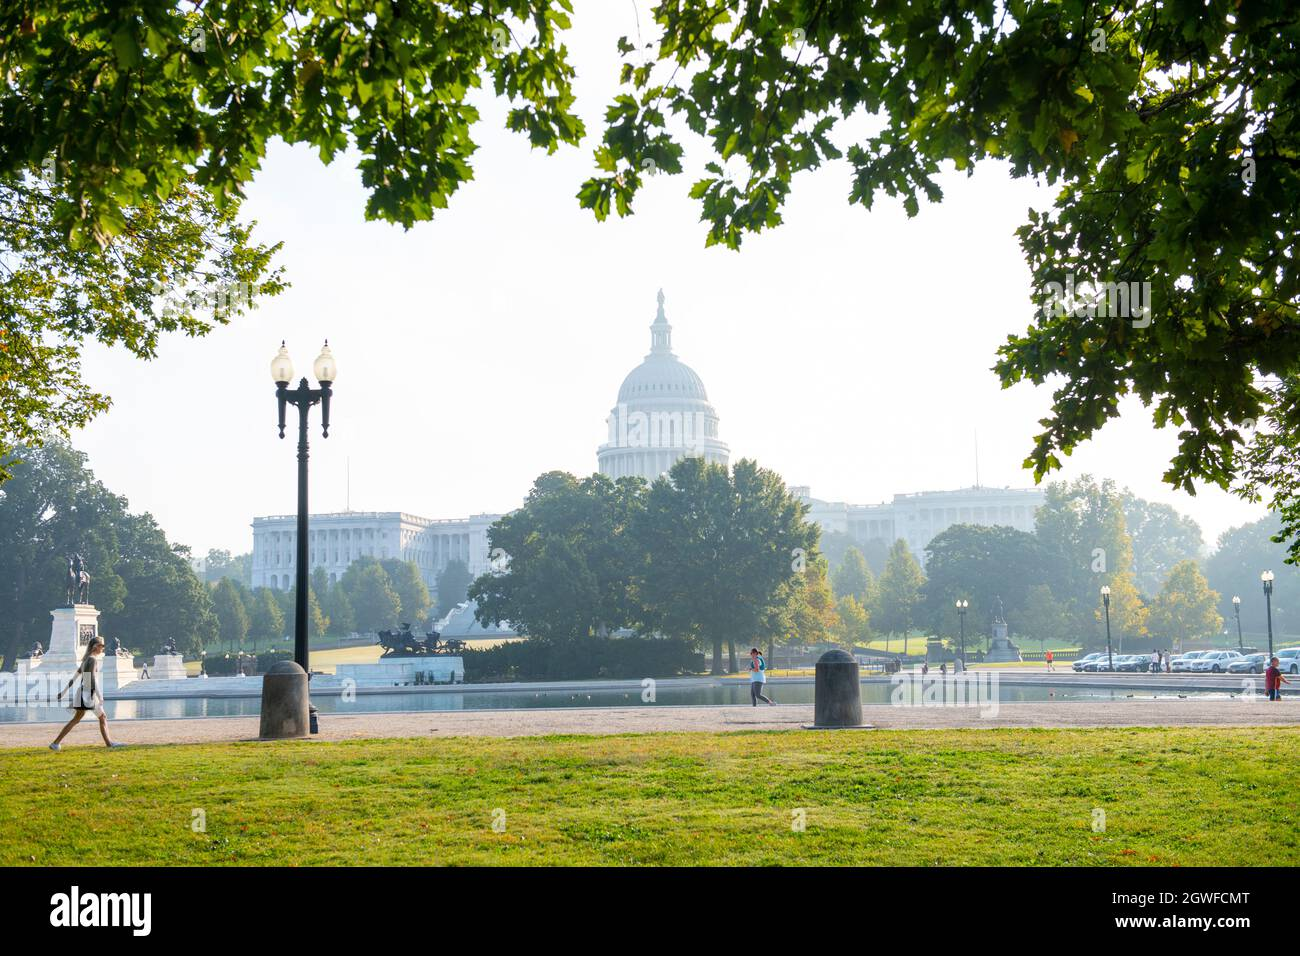 usa-washington-dc-nations-capital-the-united-states-capitol-building-for-the-federal-government-law-makers-morning-sunrise-foggy-2GWFCMT.jpg